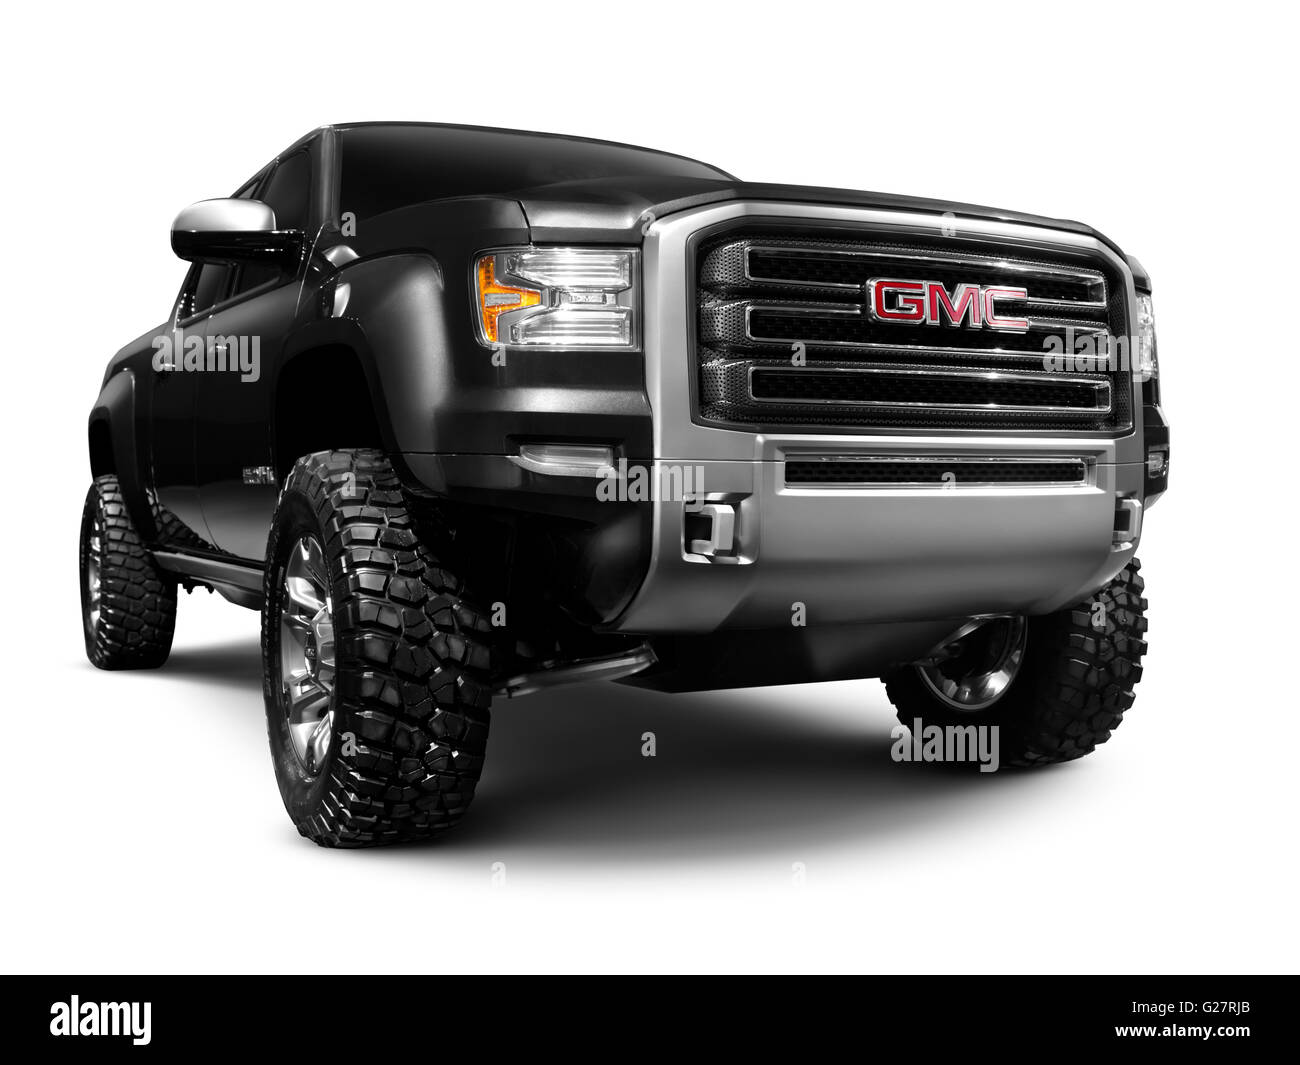 Black 2012 Gmc Sierra All Terrain Hd A Concept Pick Up Truck Stock Photo Alamy